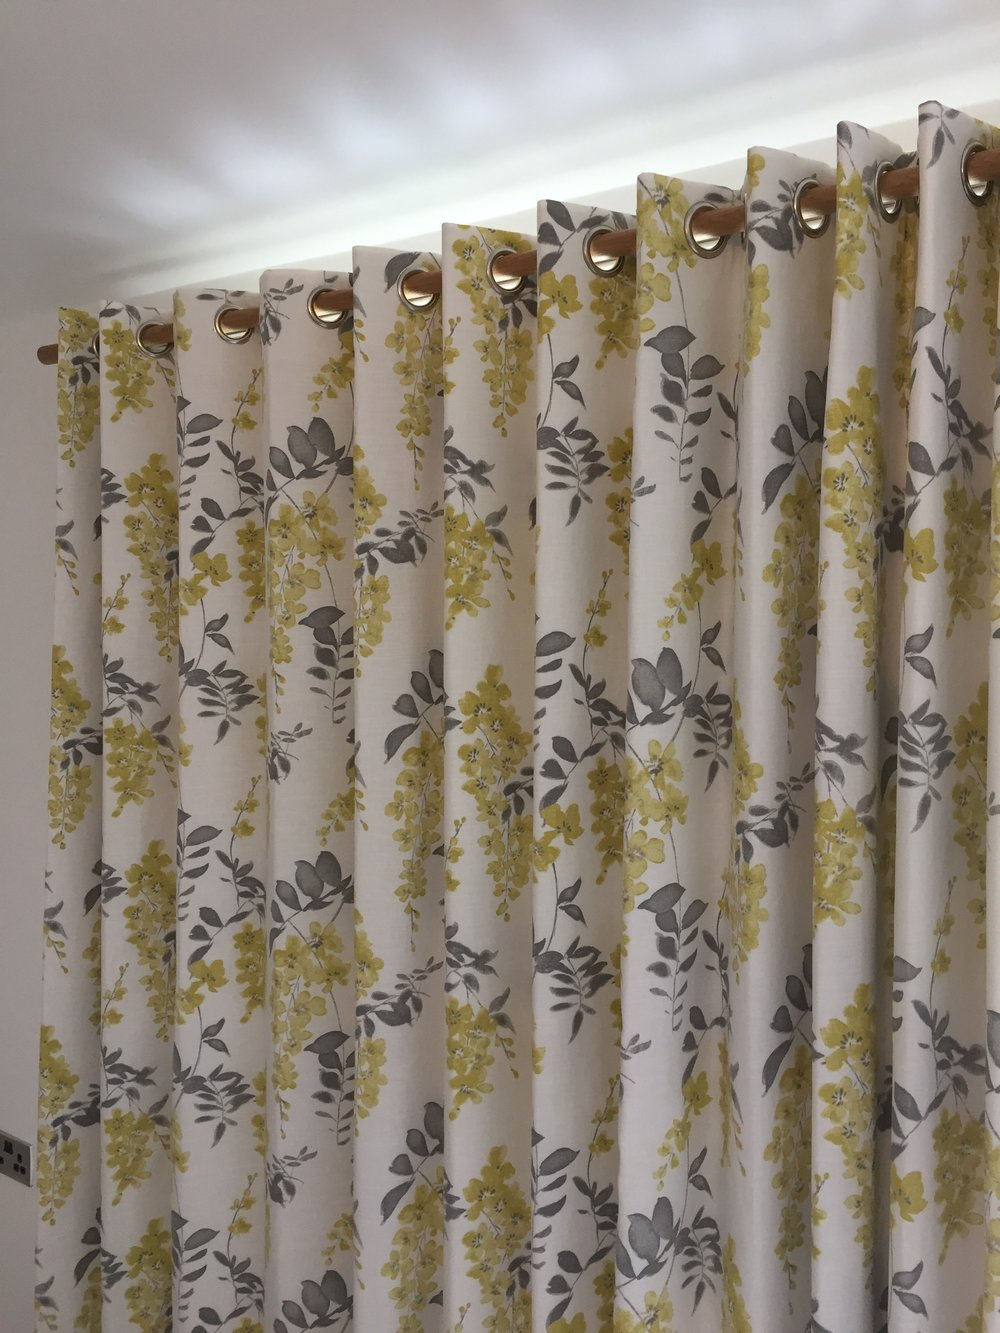 Sanderson fabric, blackout lined eyelet curtains